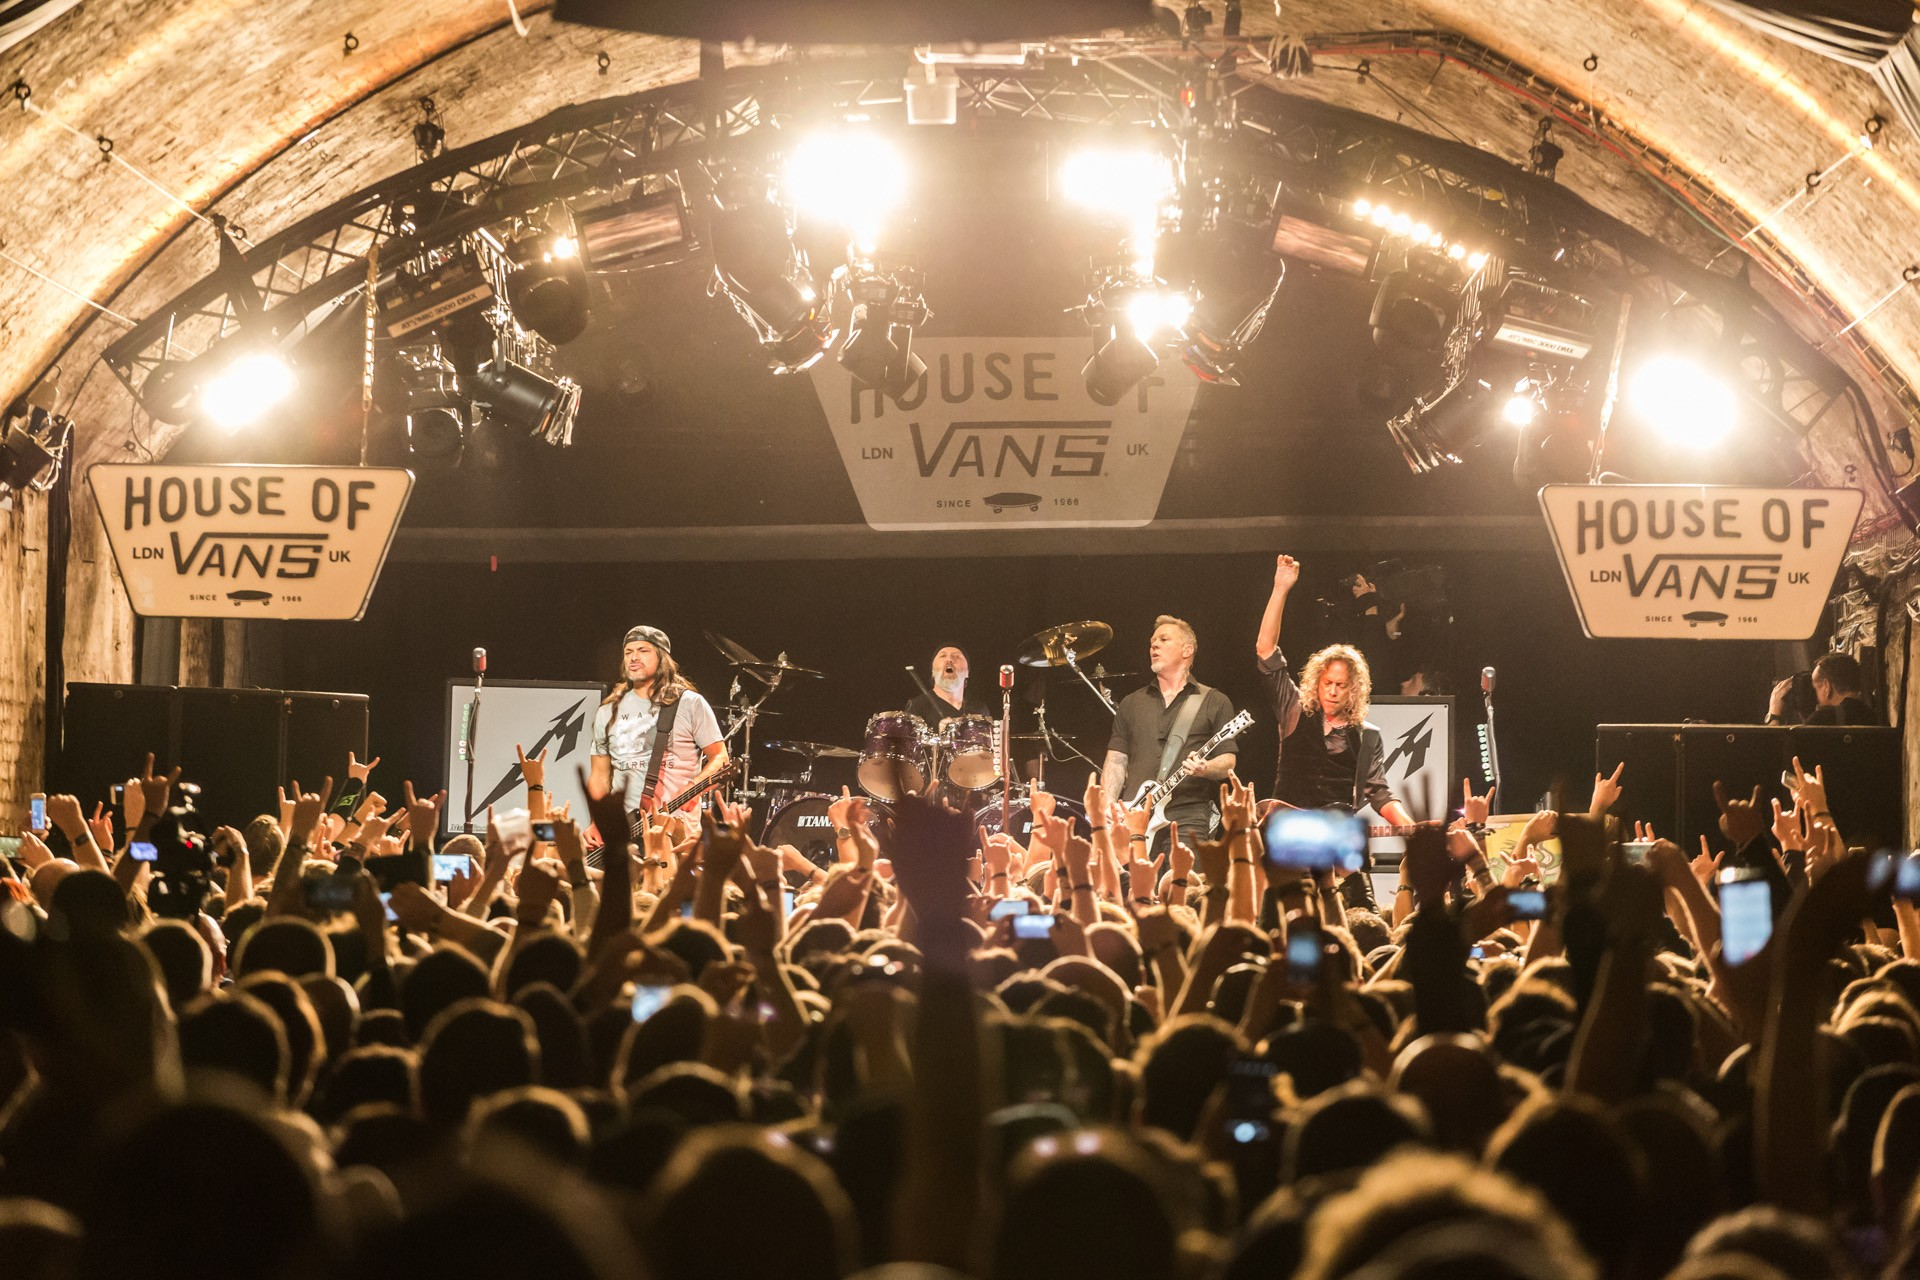 Metallica a ich Live at House of Vans